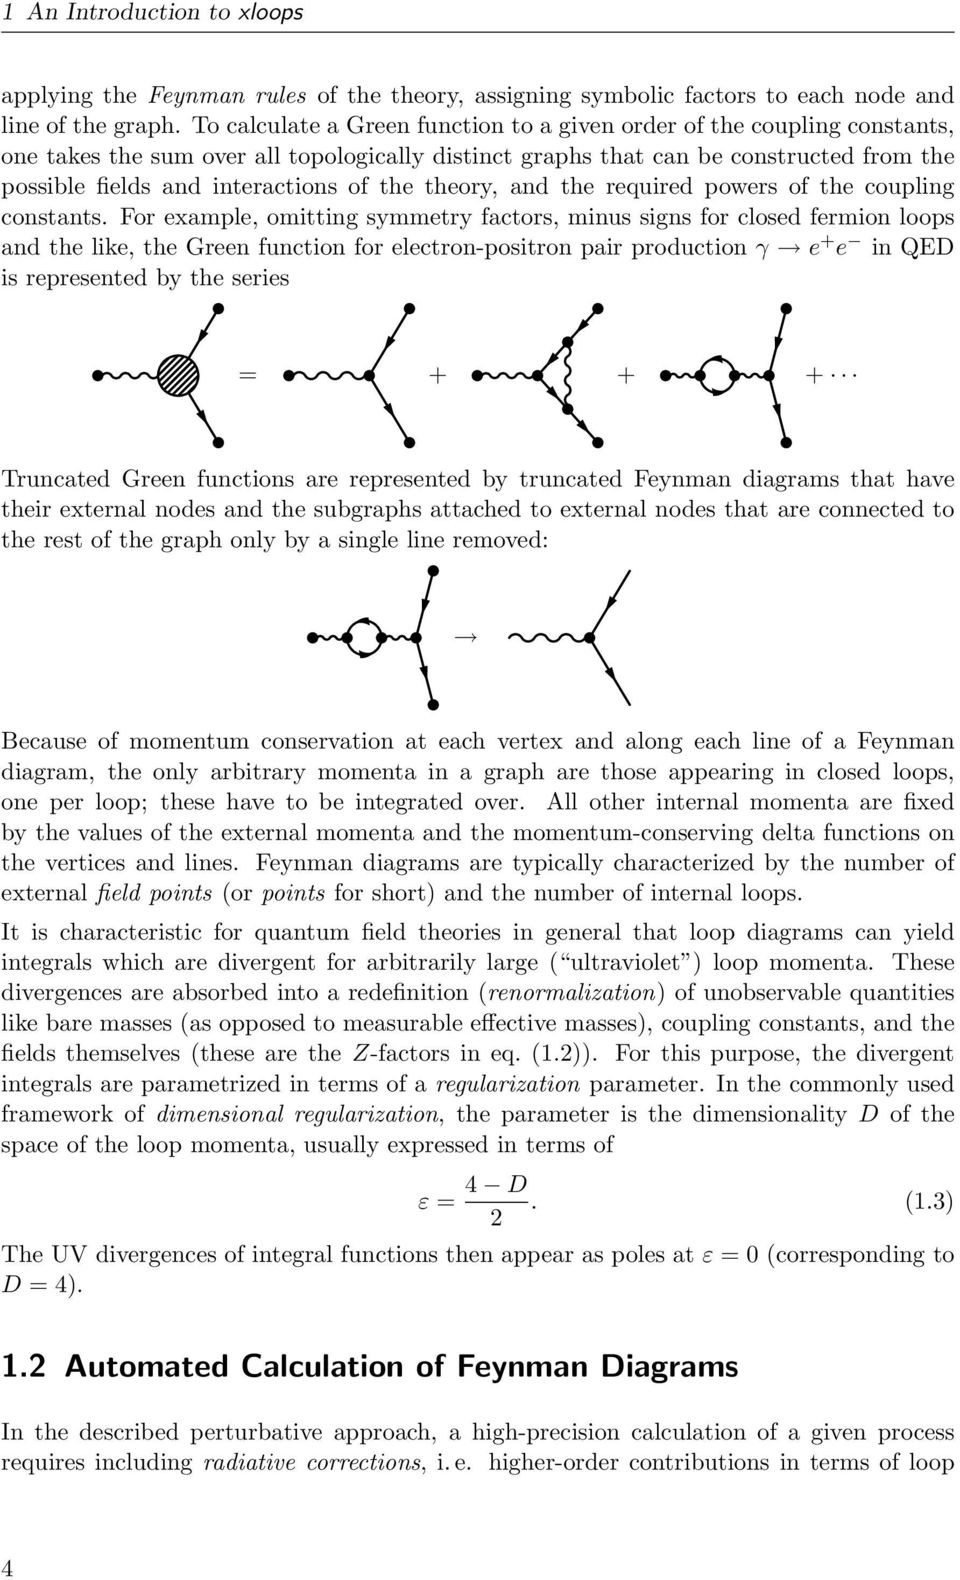 hight resolution of the theory and the required powers of the coupling constants